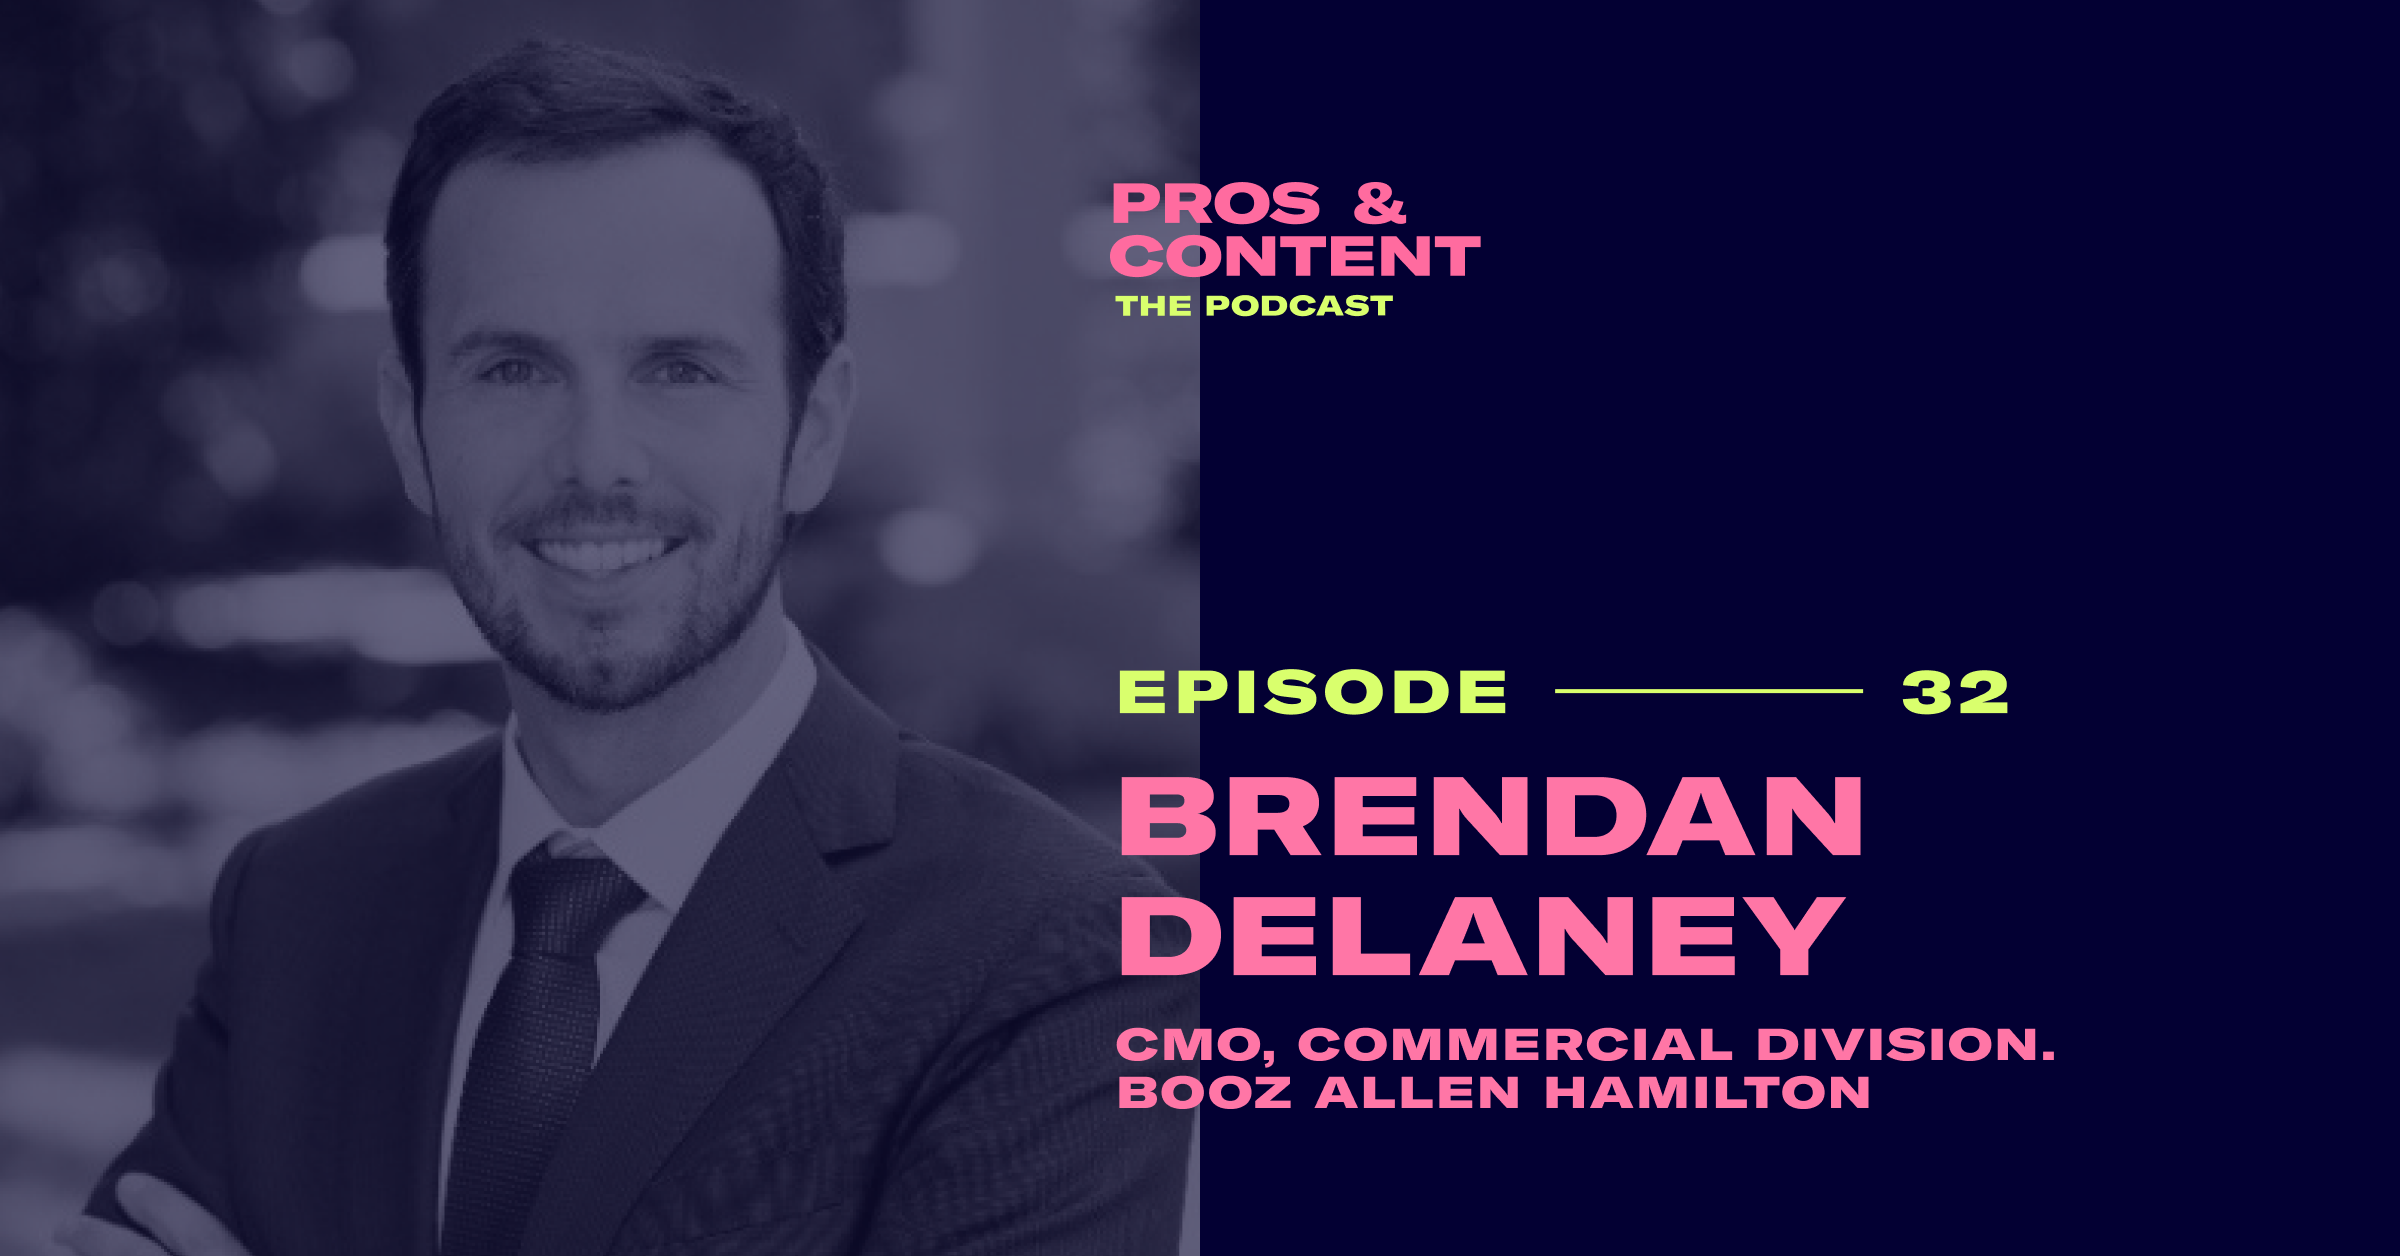 Pros & Content Podcast: Brendan Delaney